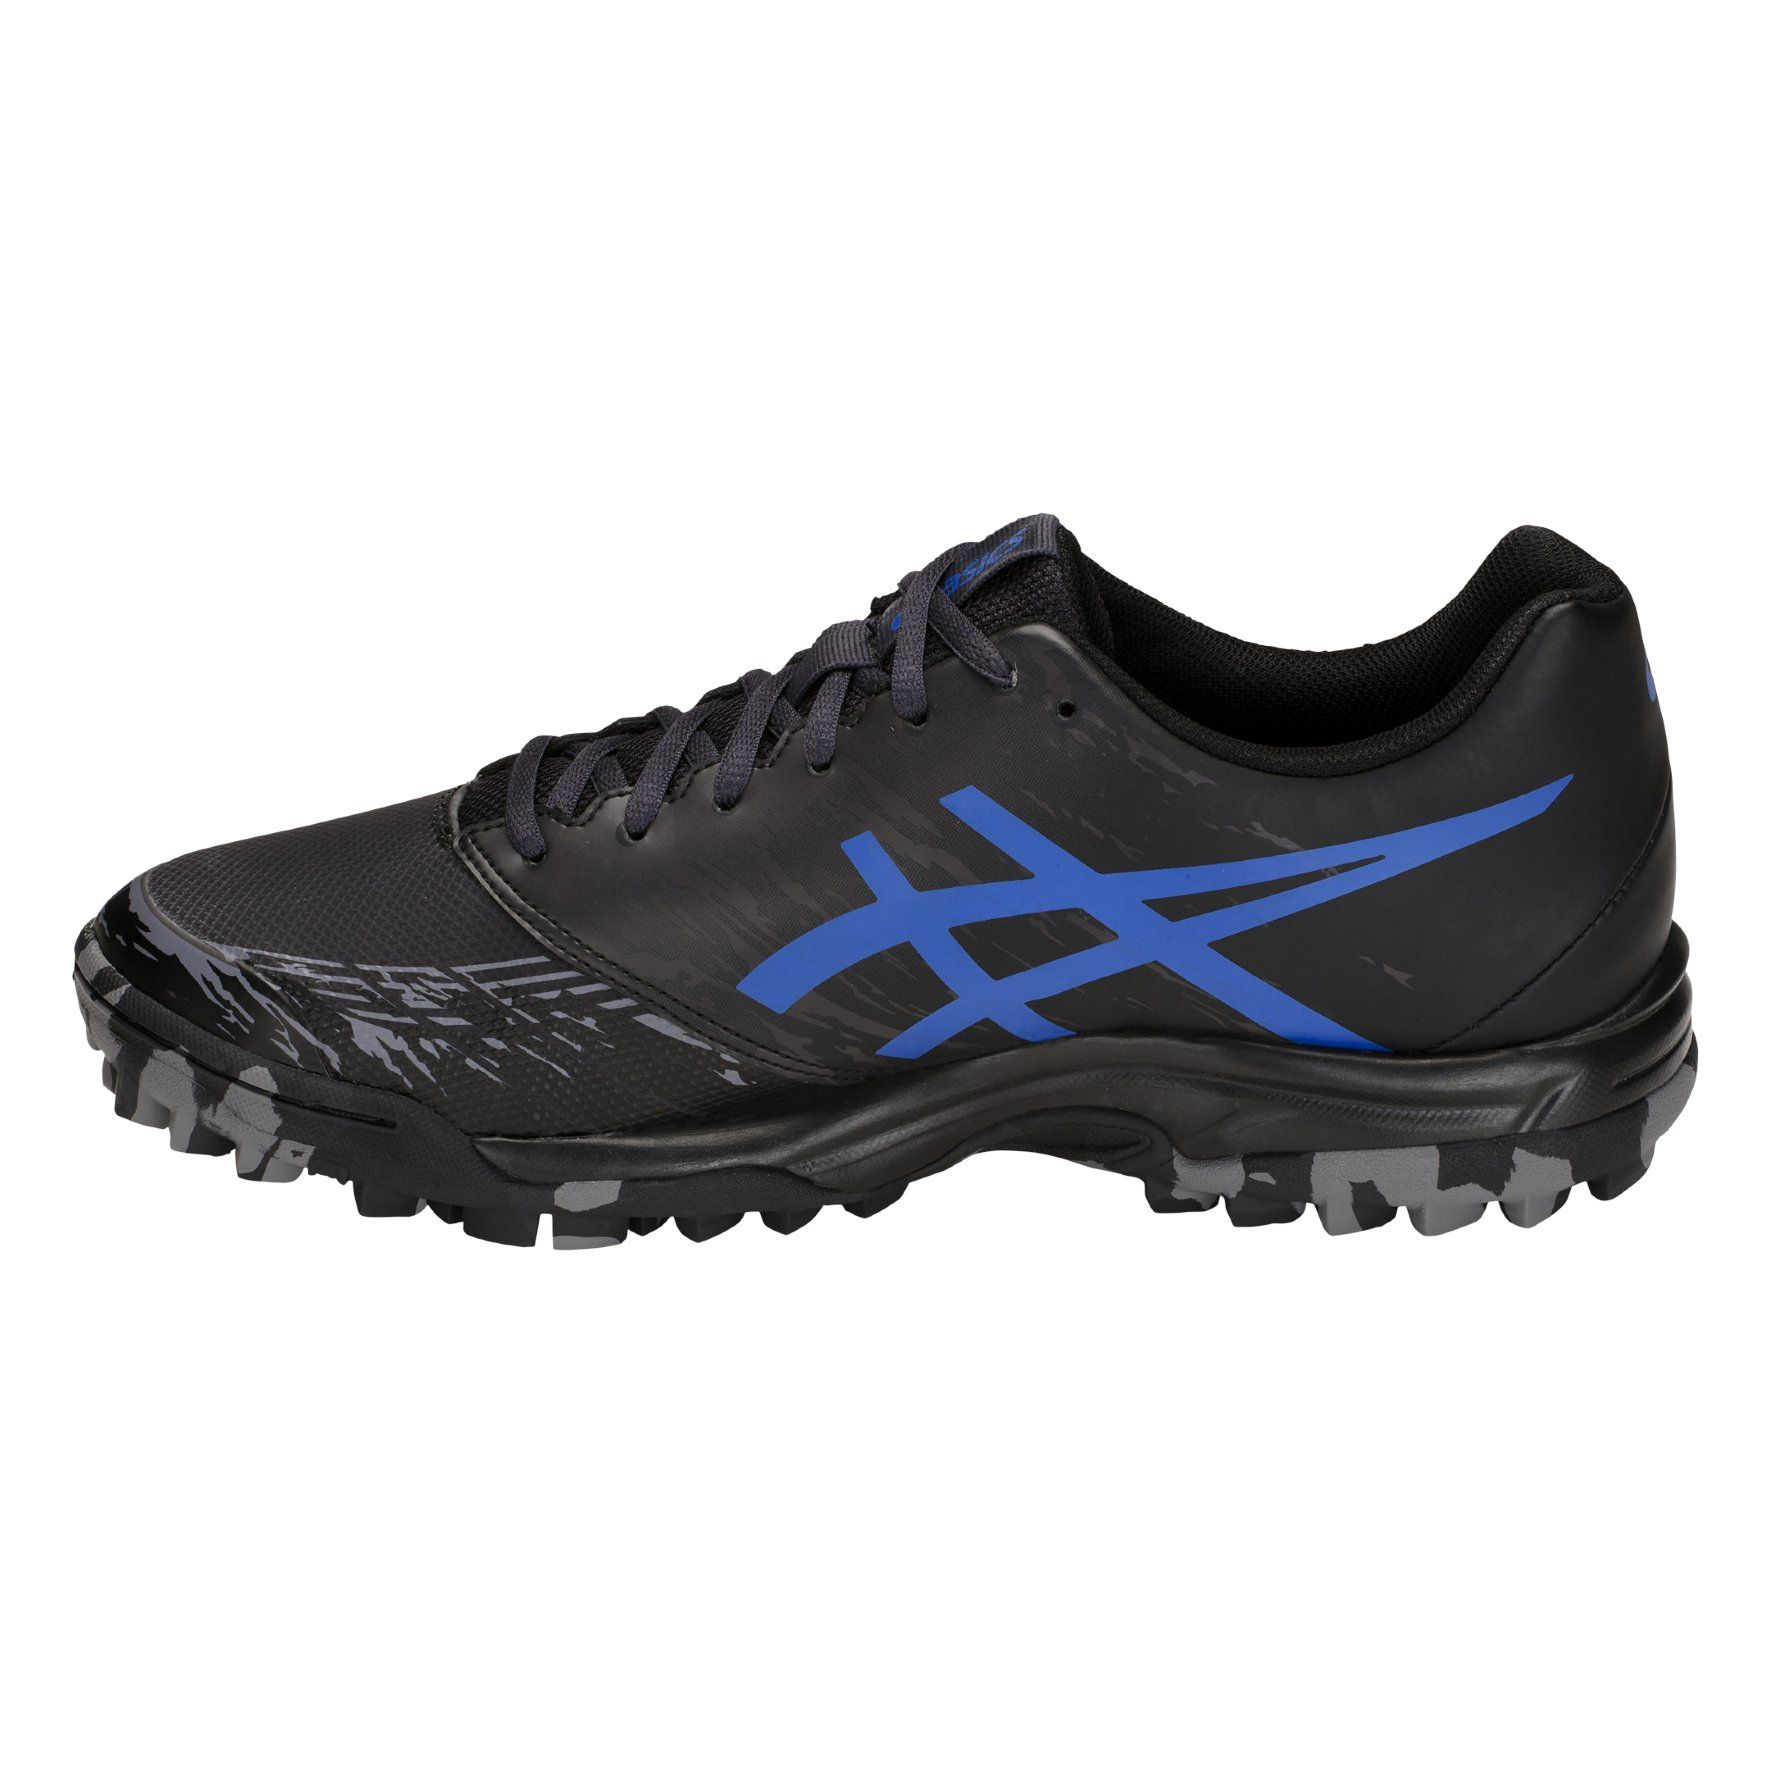 ASICS Gel-Blackheath 7 Men's Hockey Shoes